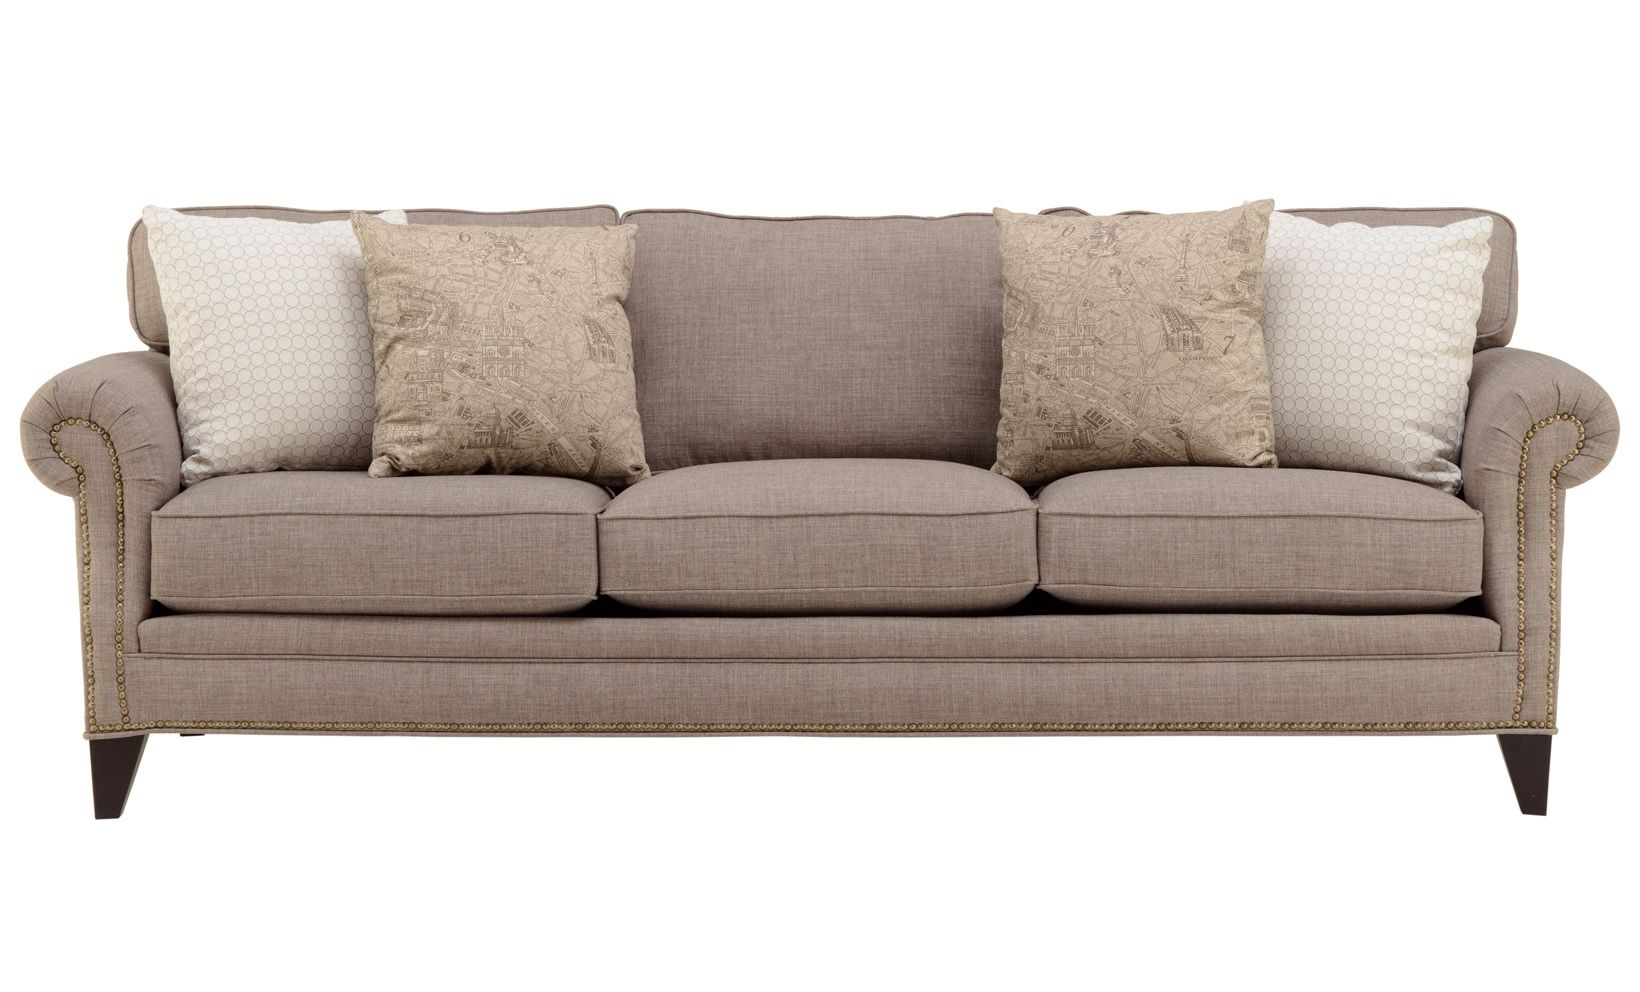 A Clic And Stunning Sofa Accented With Nailhead Trim Perfect Neutral For Your Home